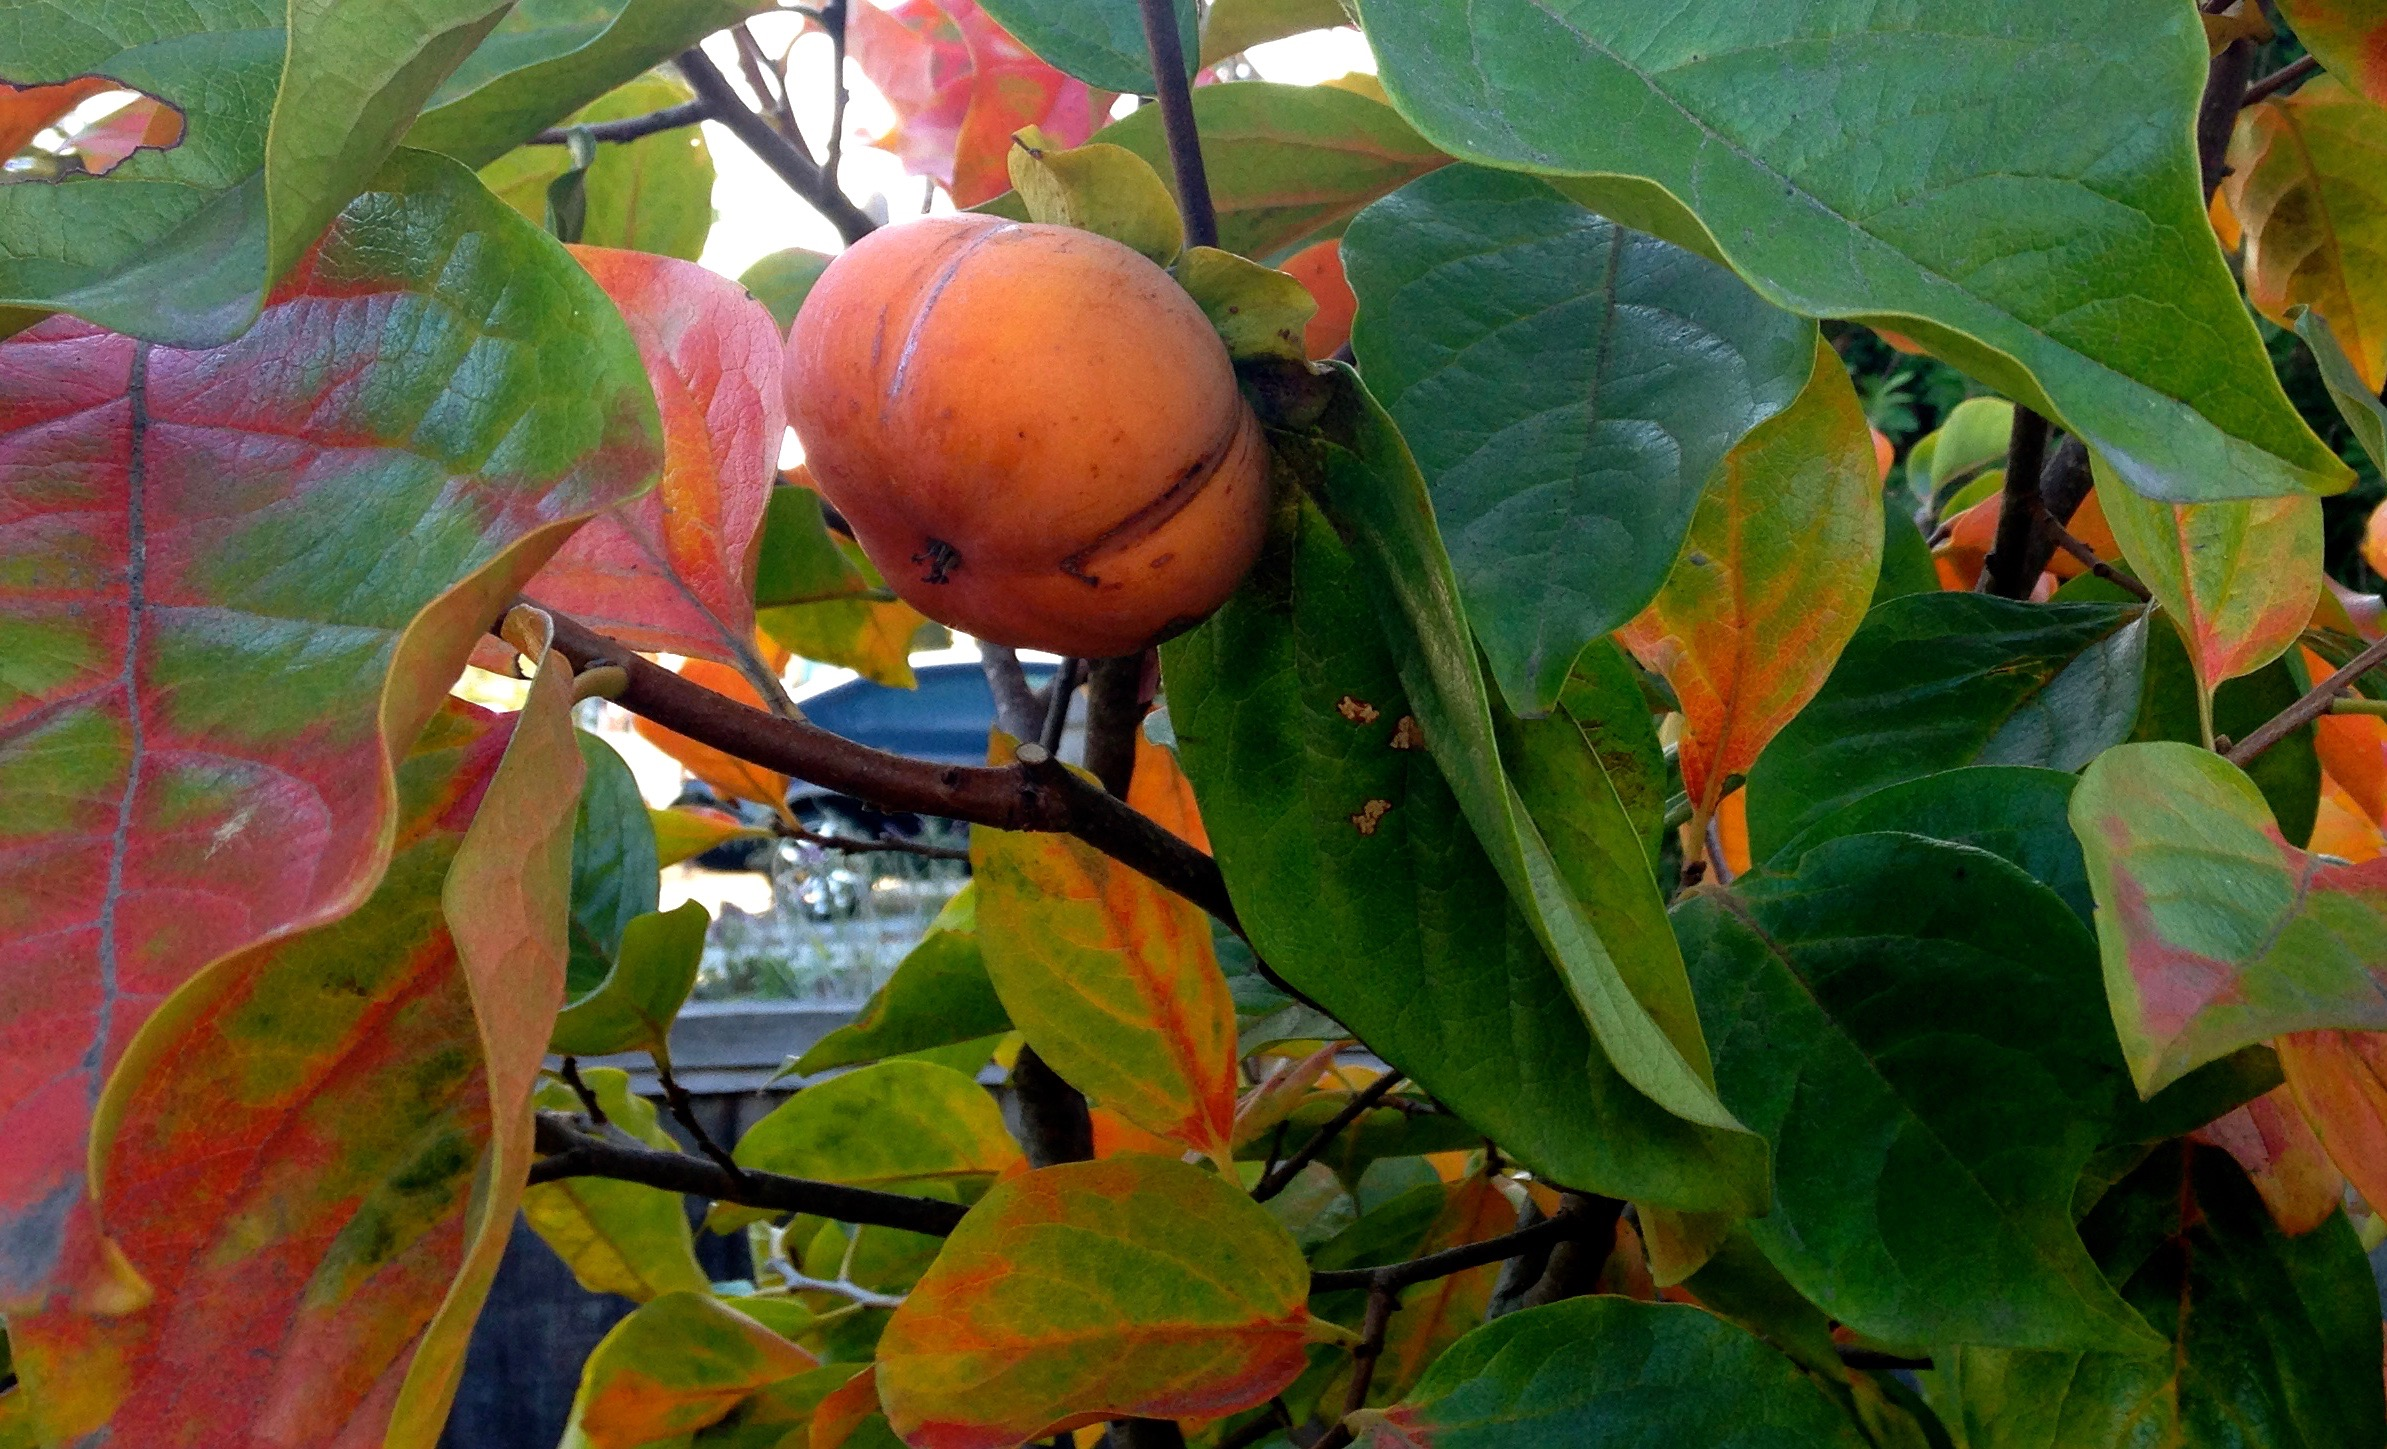 tree with ripe persimmon